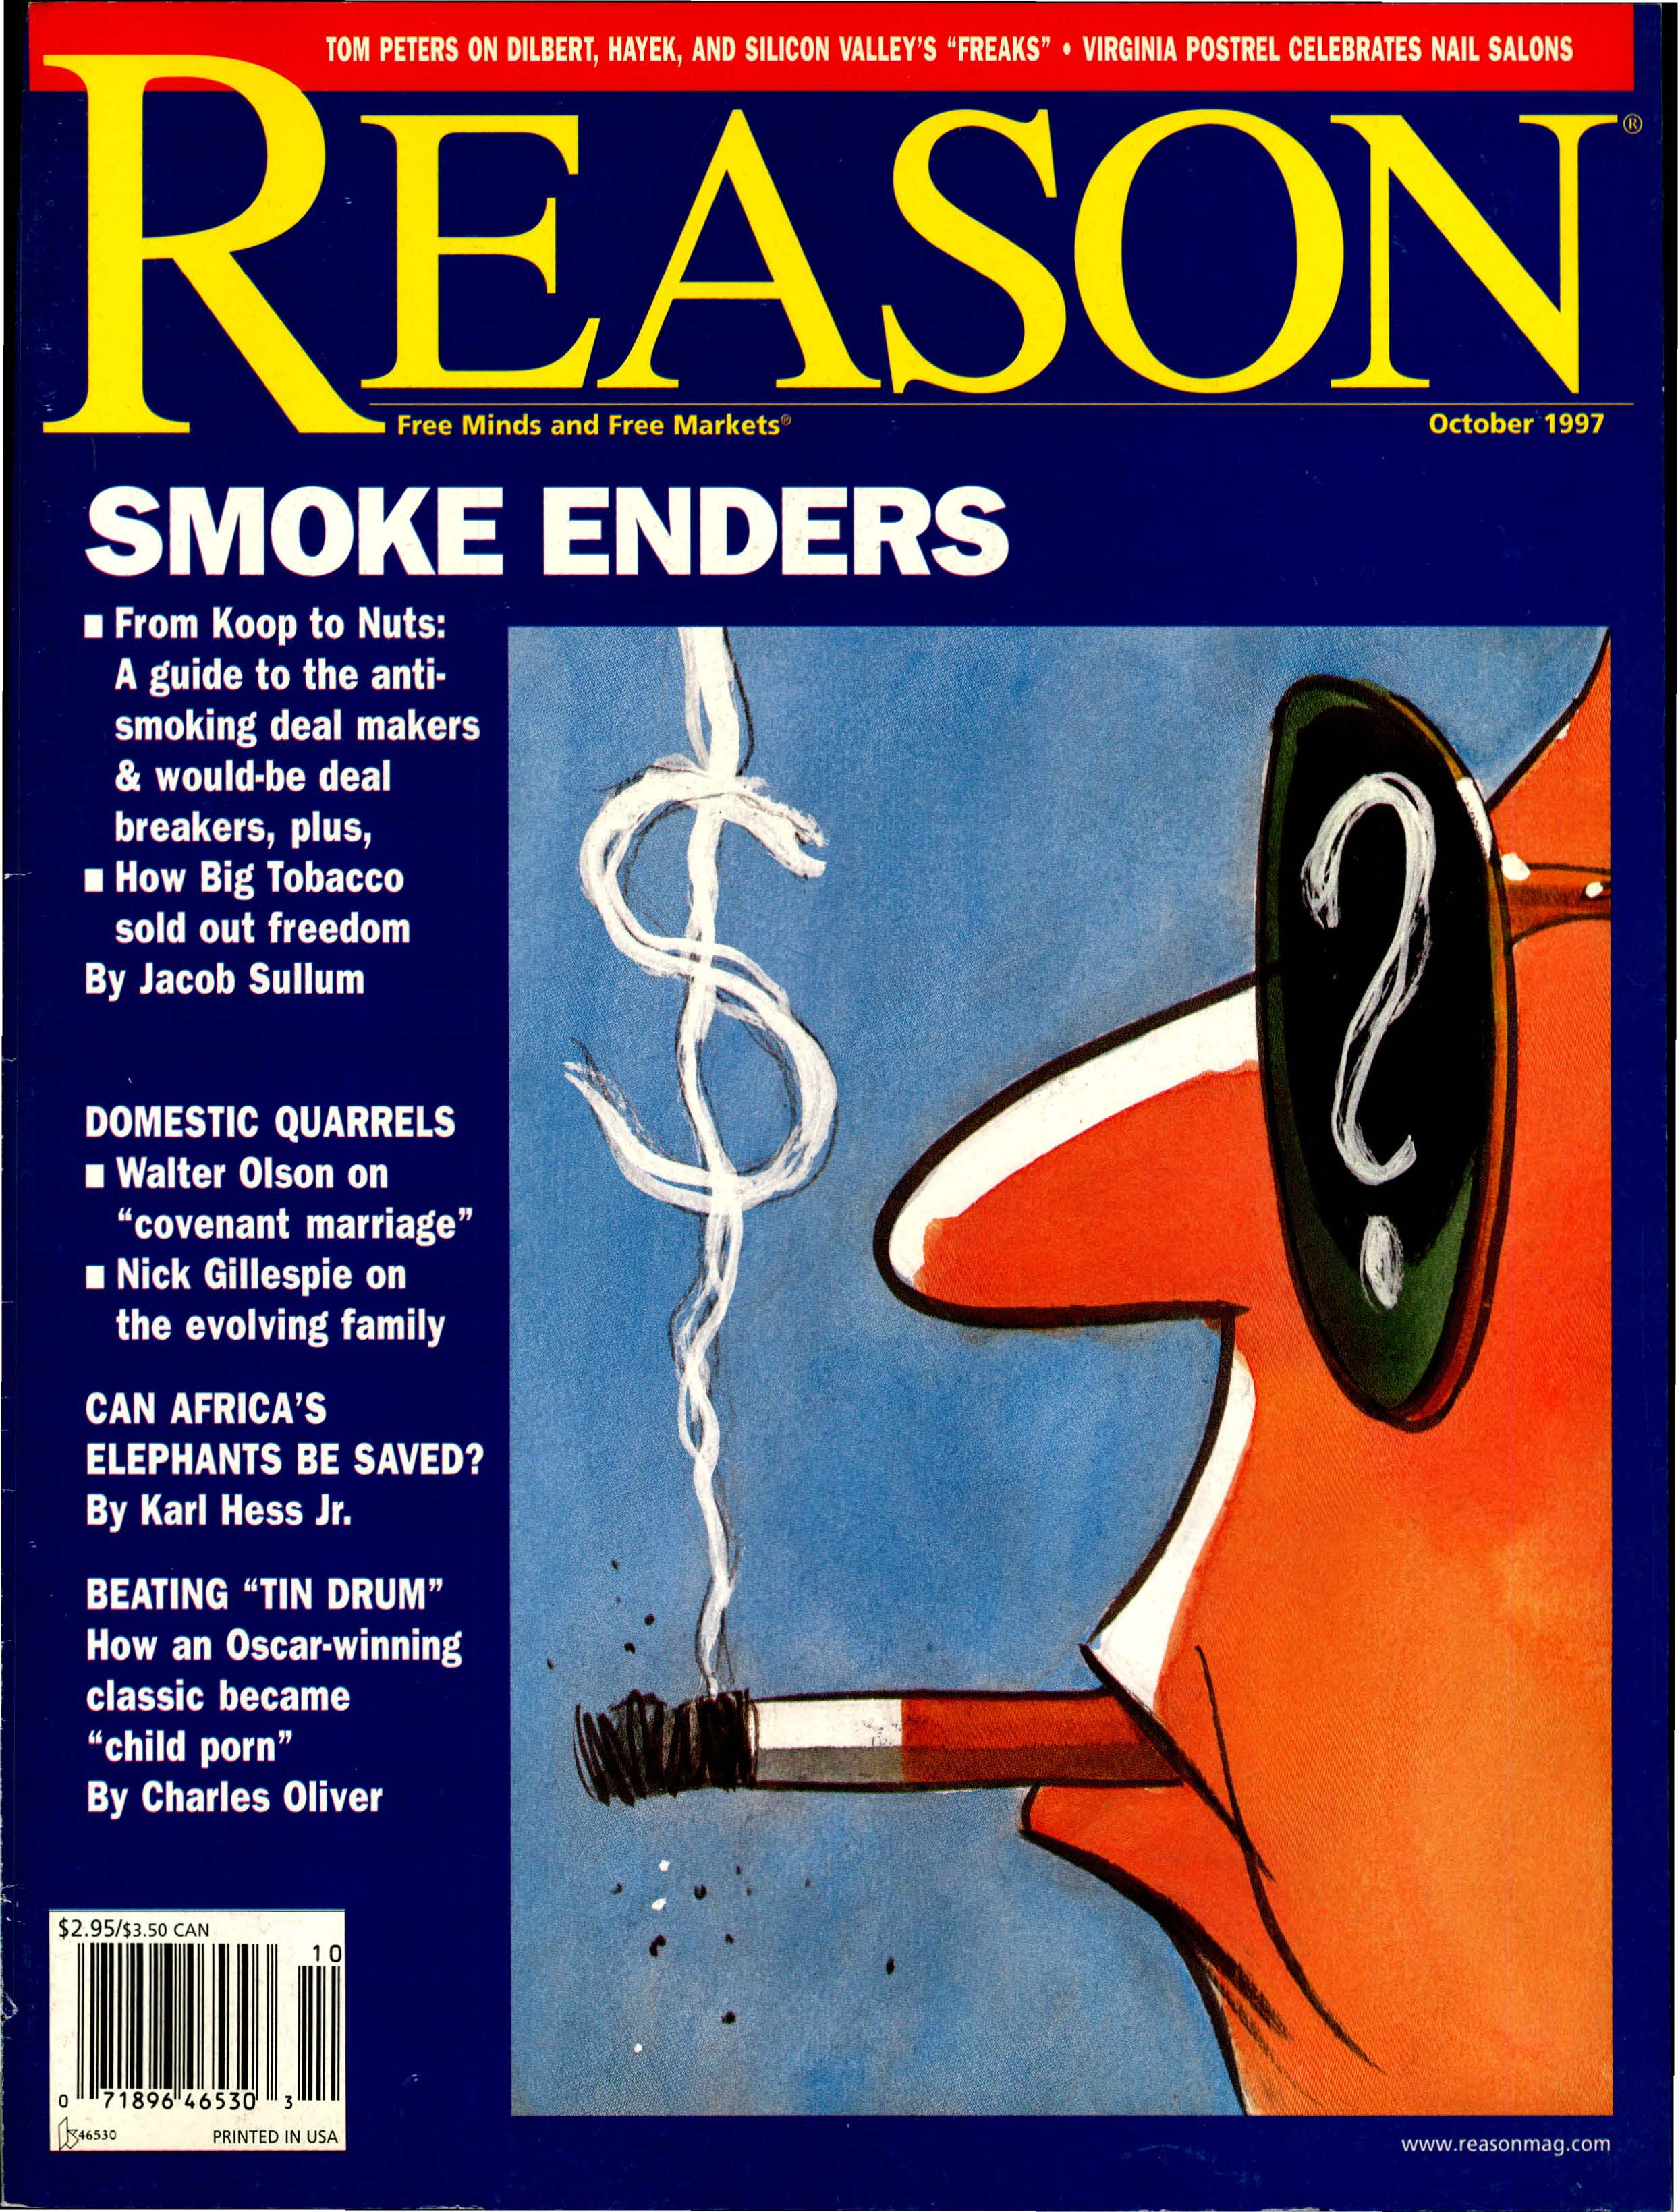 Reason Magazine, October 1997 cover image